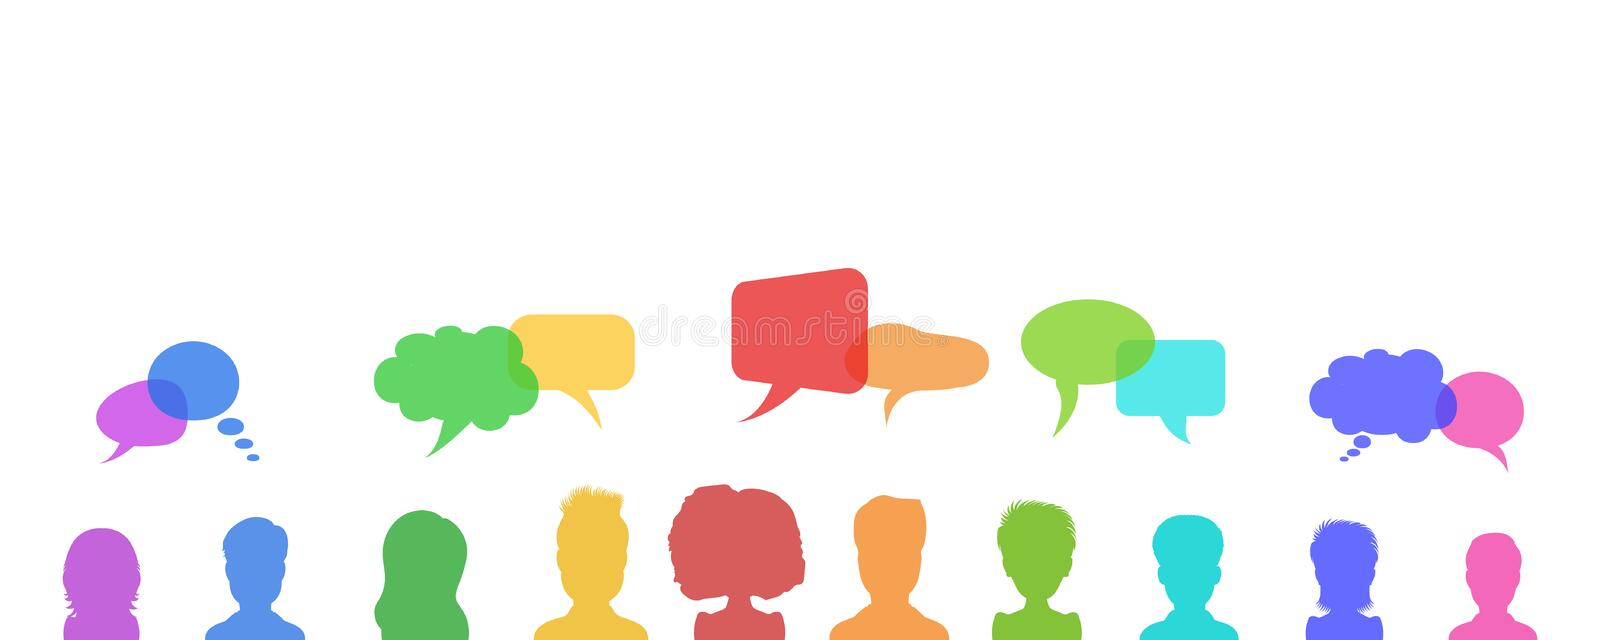 Business discussion or people talking, chat dialogue speech bubbles, news or social network design concept. Flat style. Vector illustration vector illustration